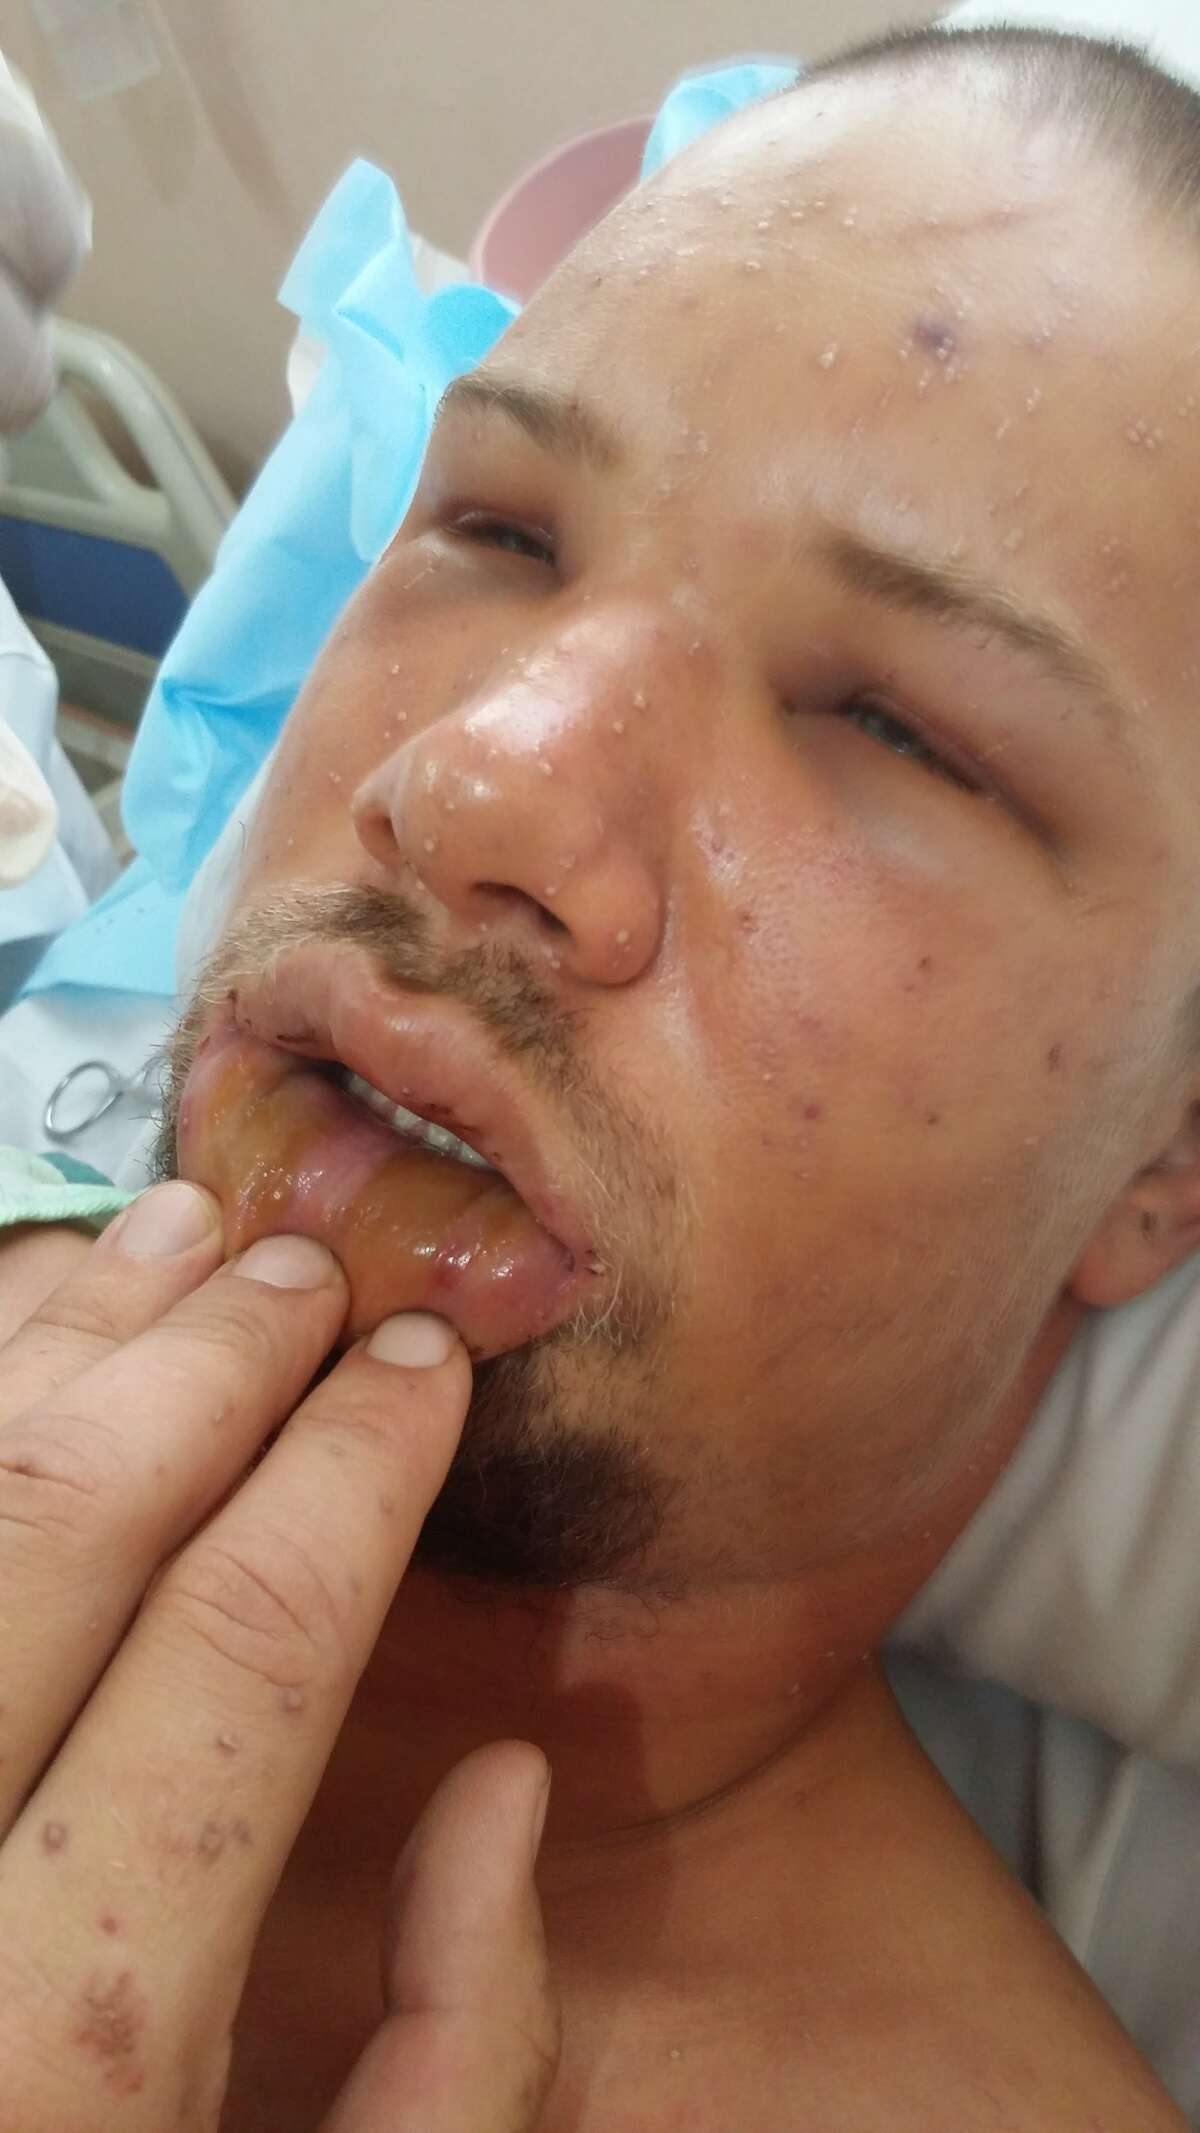 Mitch Parker, 29, from Sugar Land suffered over 1,000 bee stings while he was up a 200 foot high cliff in Belize. Doctors told family he would not make it through the night.